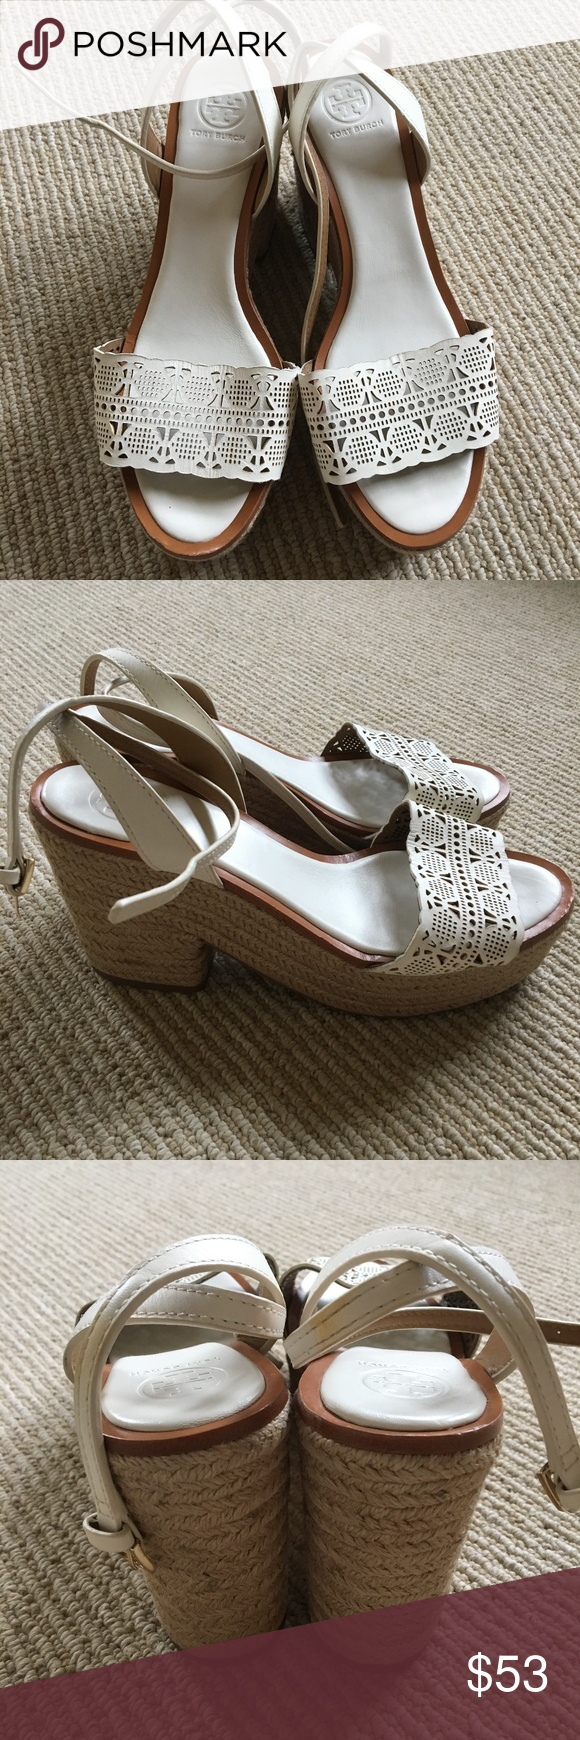 ad143b86f Tory Burch Roselle Leather Espadrille Sandal NWOB Roselle leather 100mm  platform espadrille sandal in white.